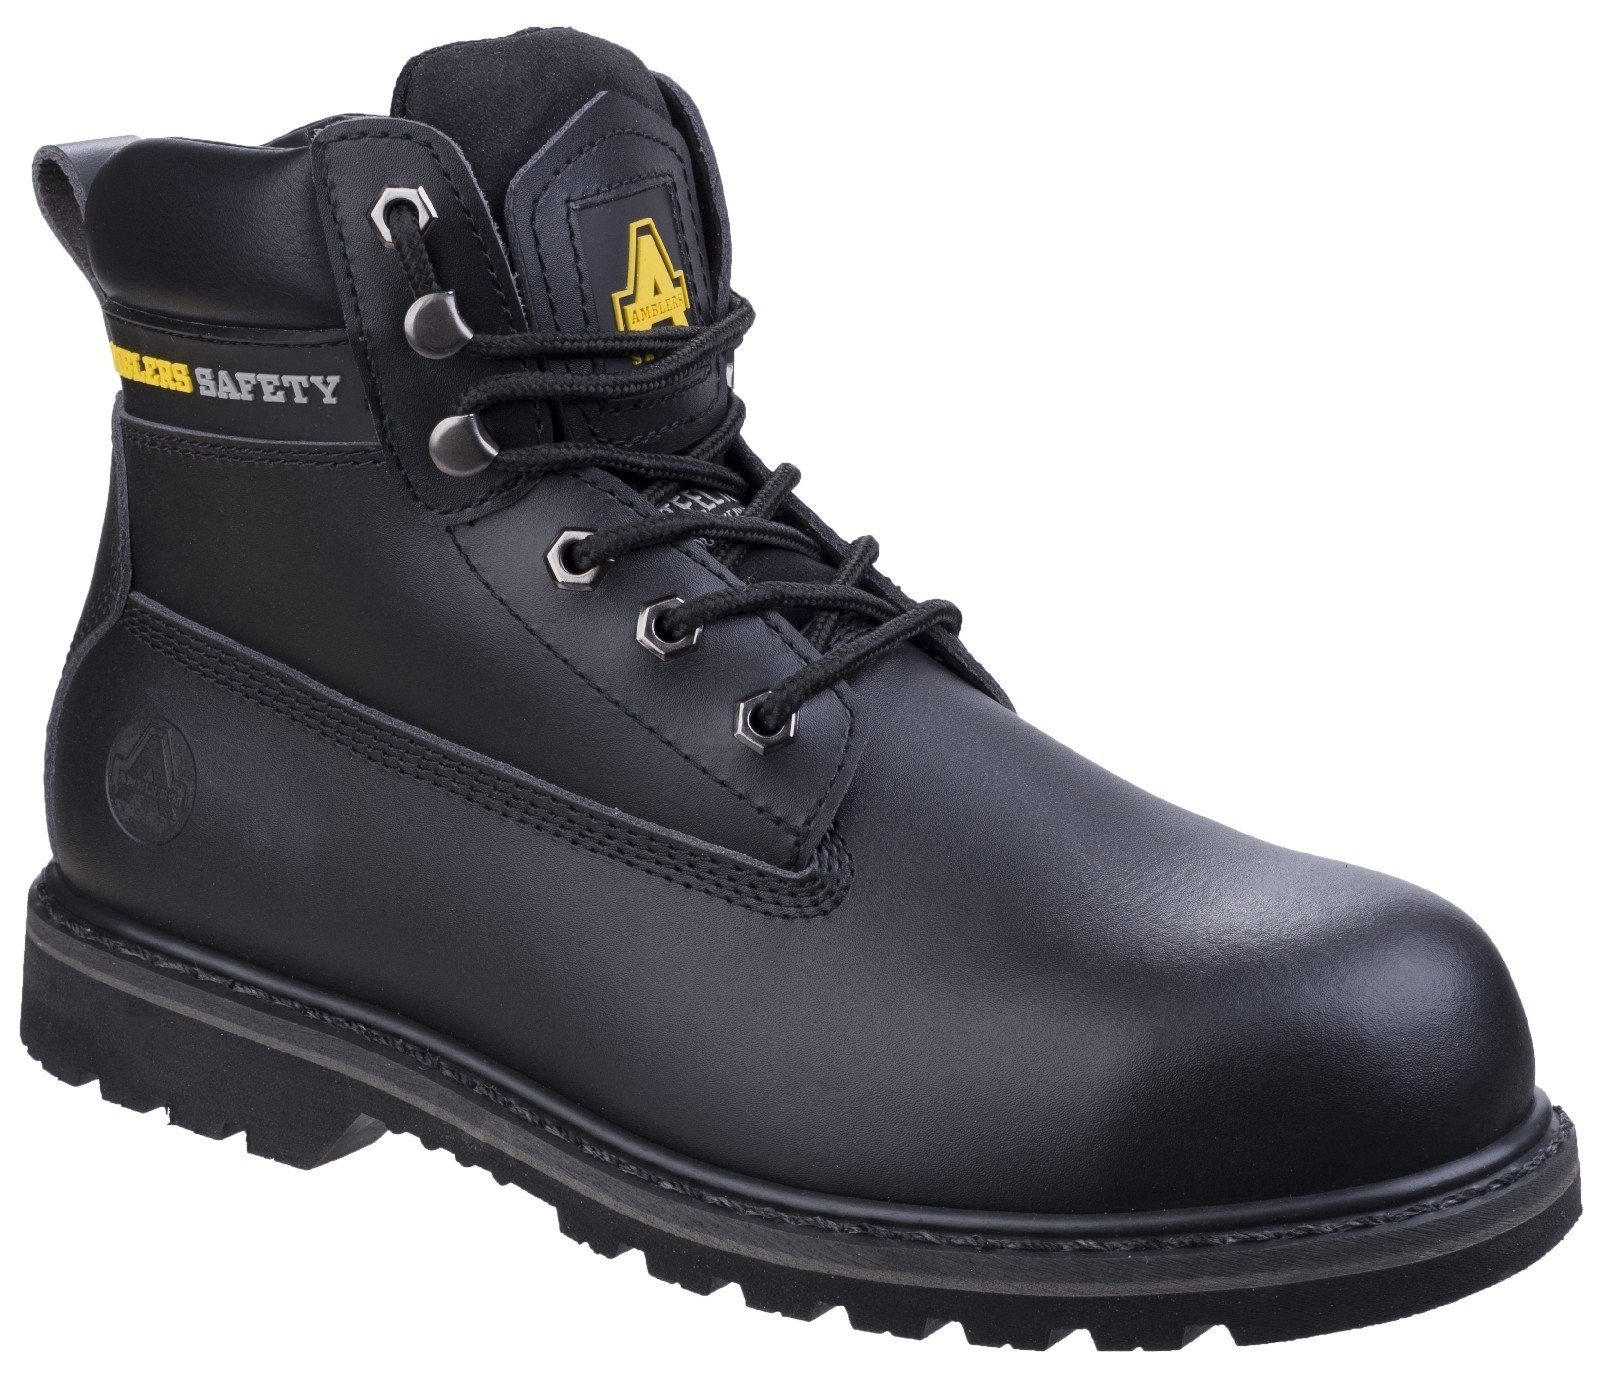 Amblers Unisex Safety Goodyear Welted Boot Black 01049 - Black 4